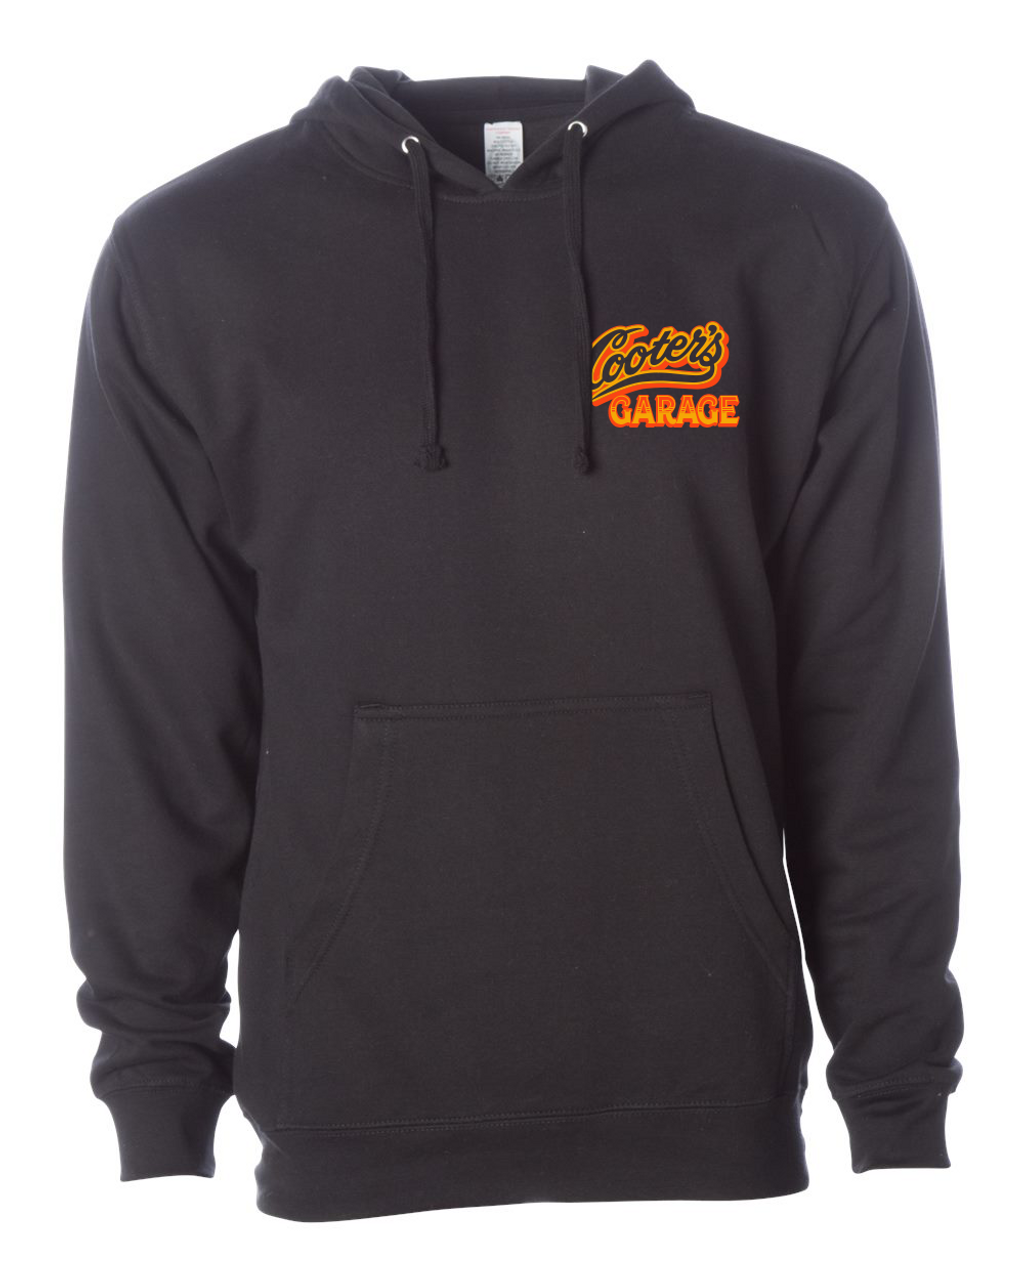 Cars of Hazzard Pullover Hoodie